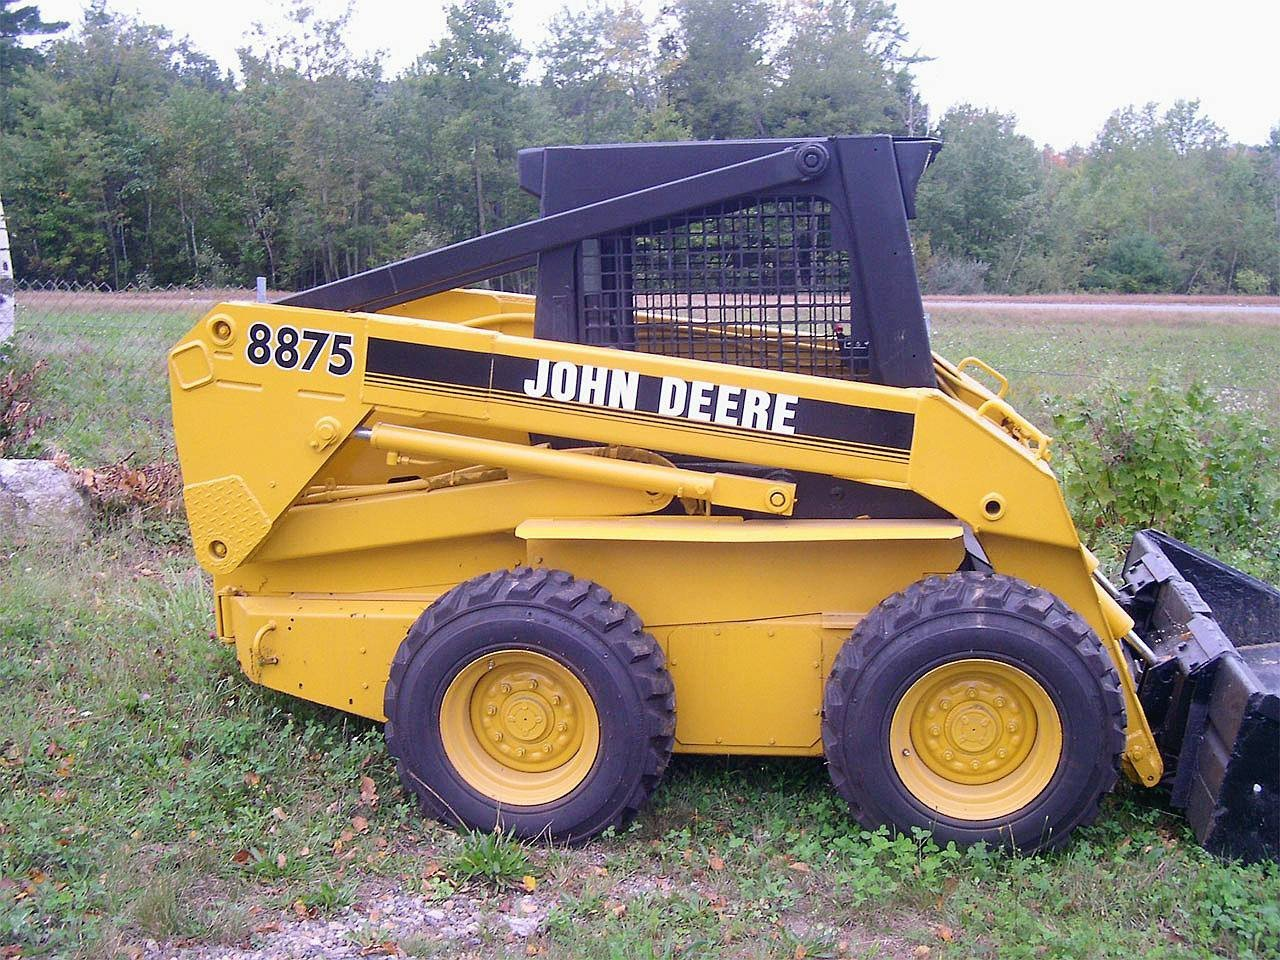 John Deere 8875 Skid-Steer Loader Technical and 41 similar items. Jd8875 2